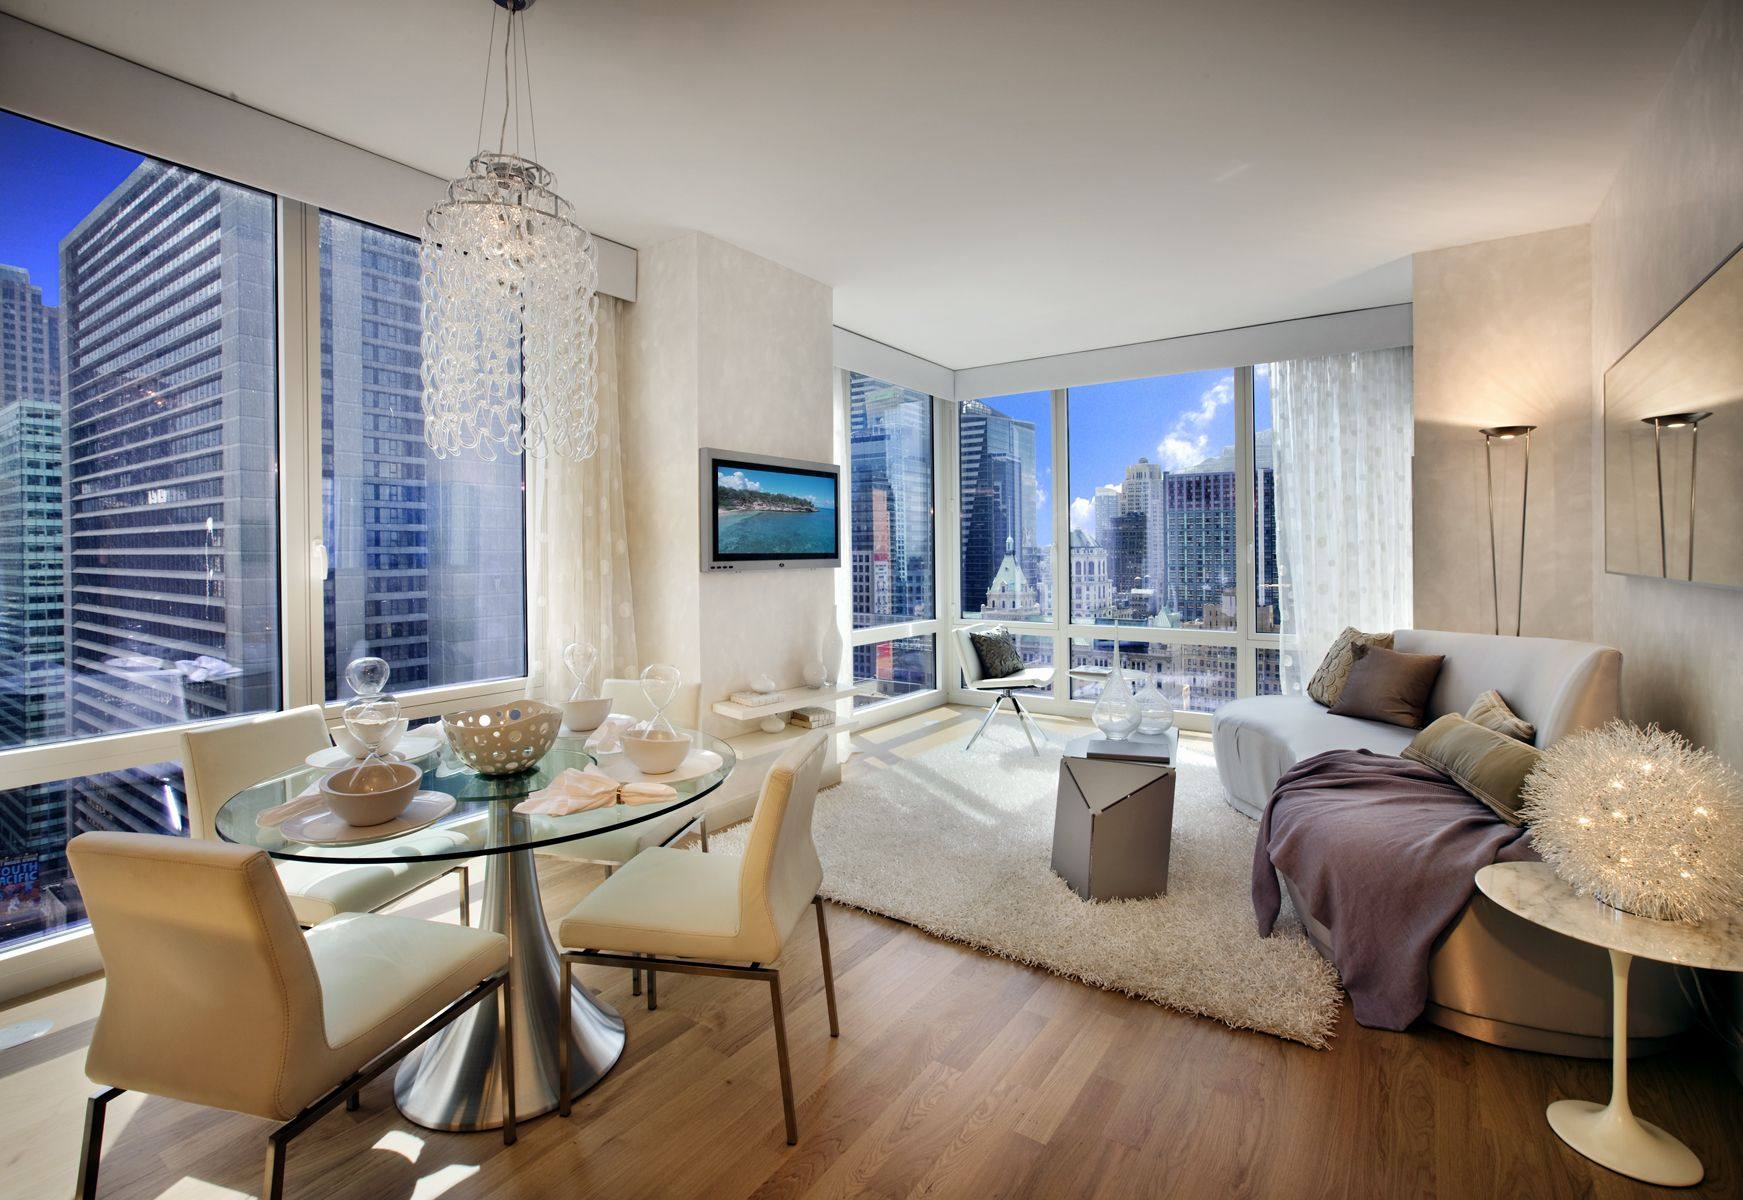 How supermodels live: luxury apartments with stunning views of the metropolis 62